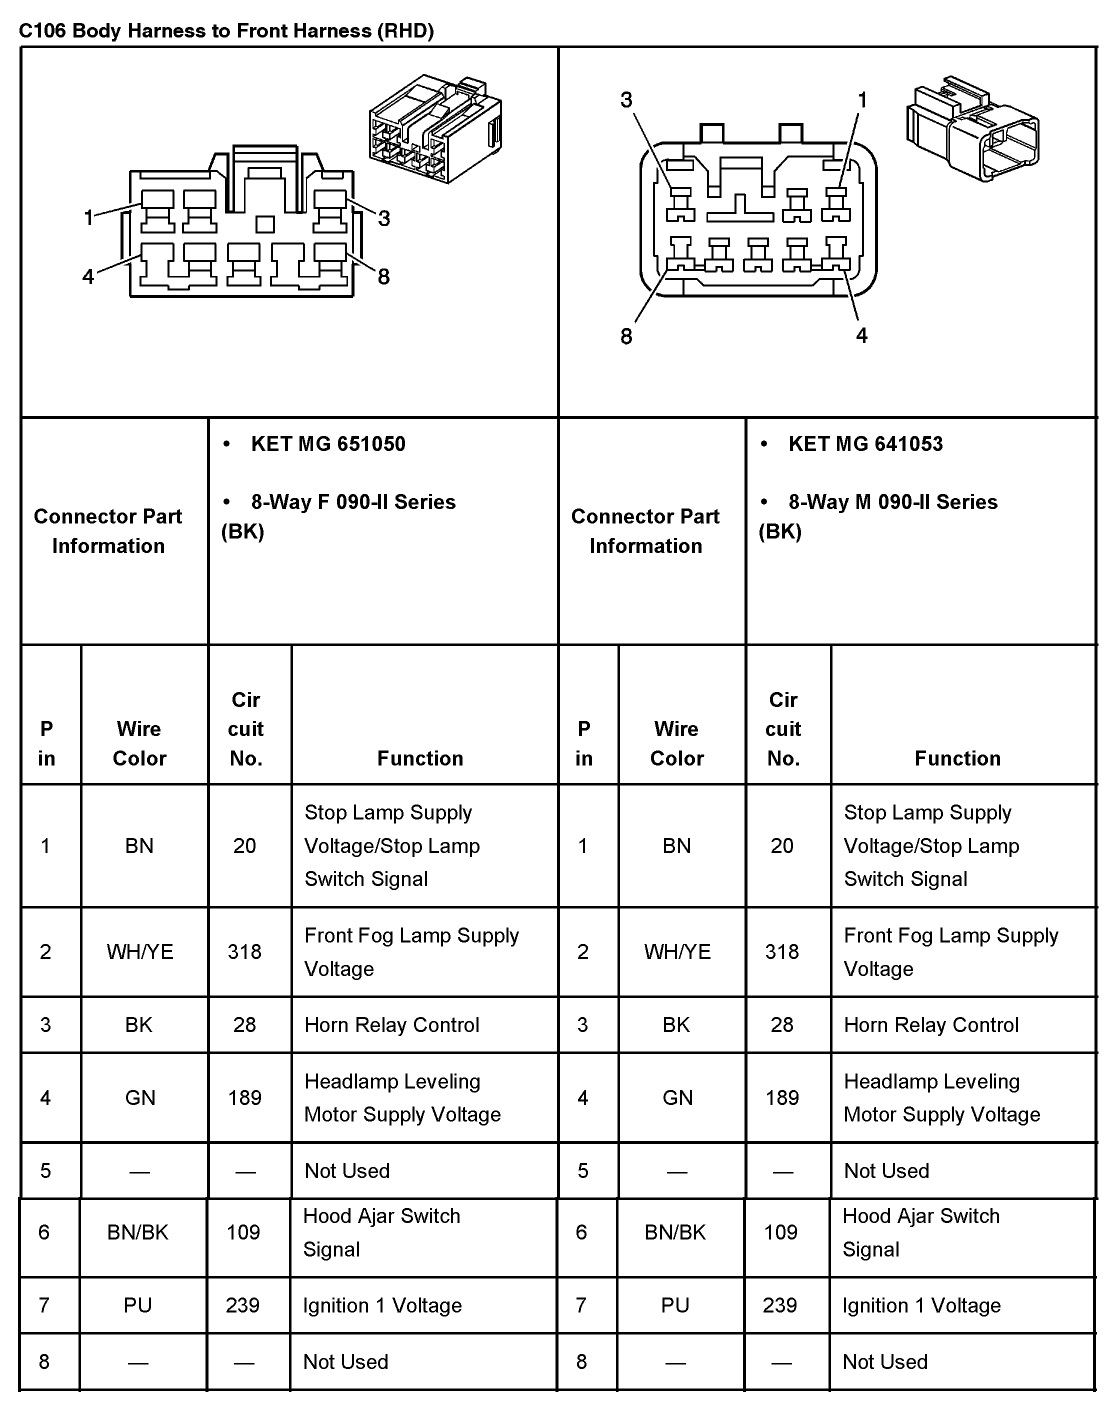 Chevy Aveo Fuse Box Splicer Books Of Wiring Diagram \u2022 Chevy Tracker Fuse  Box Chevy Aveo Fuse Box Splicer